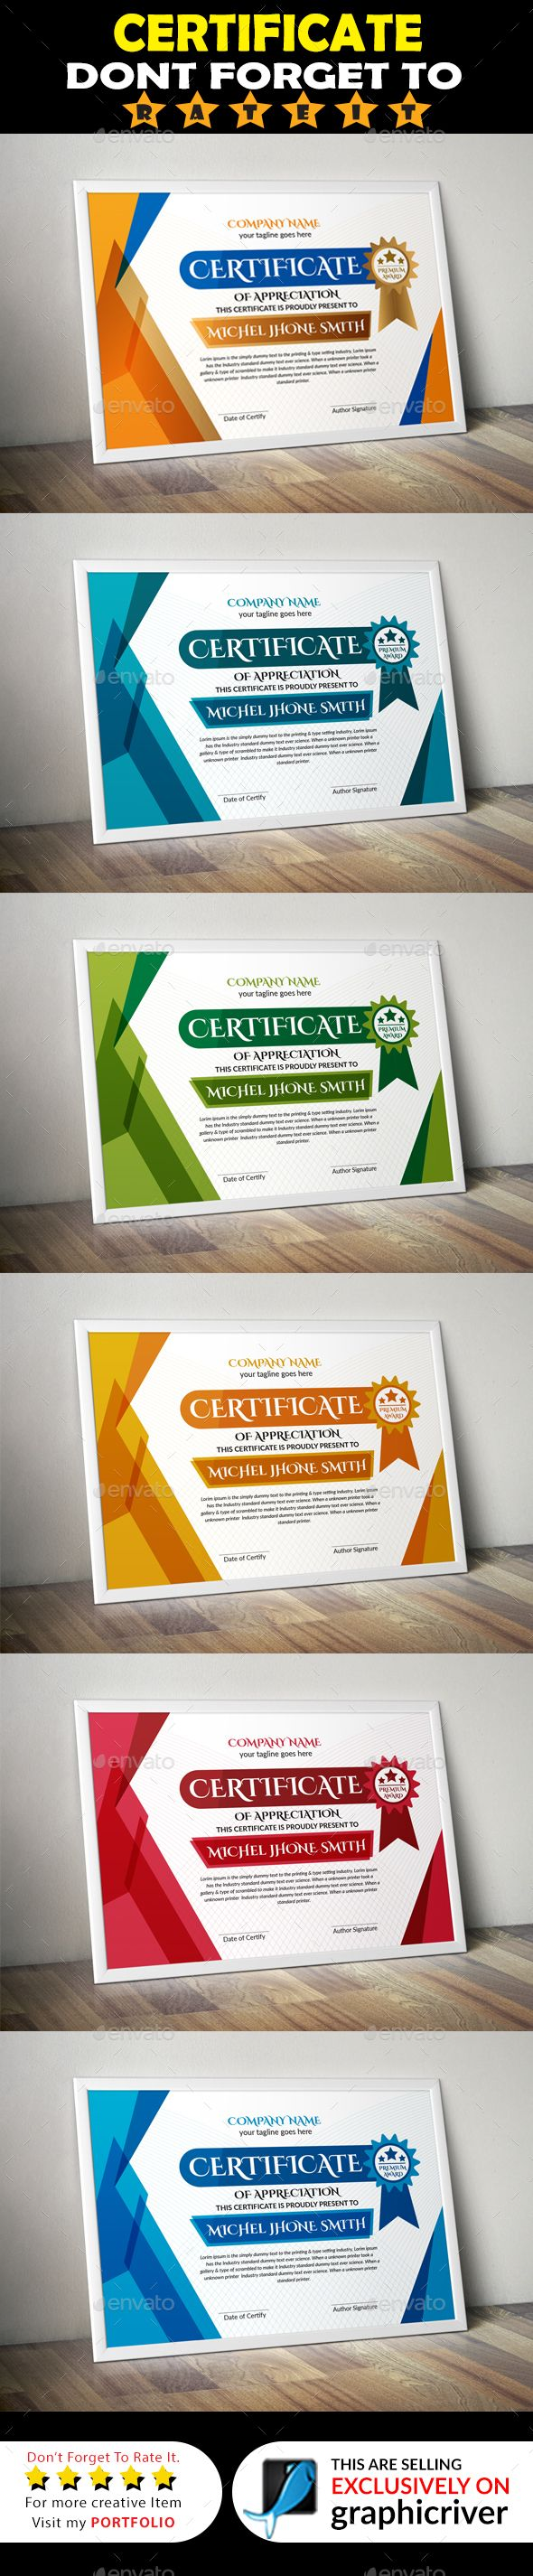 #Certificate - Certificates #Stationery Download here: https://graphicriver.net/item/certificate/20288499?ref=alena994